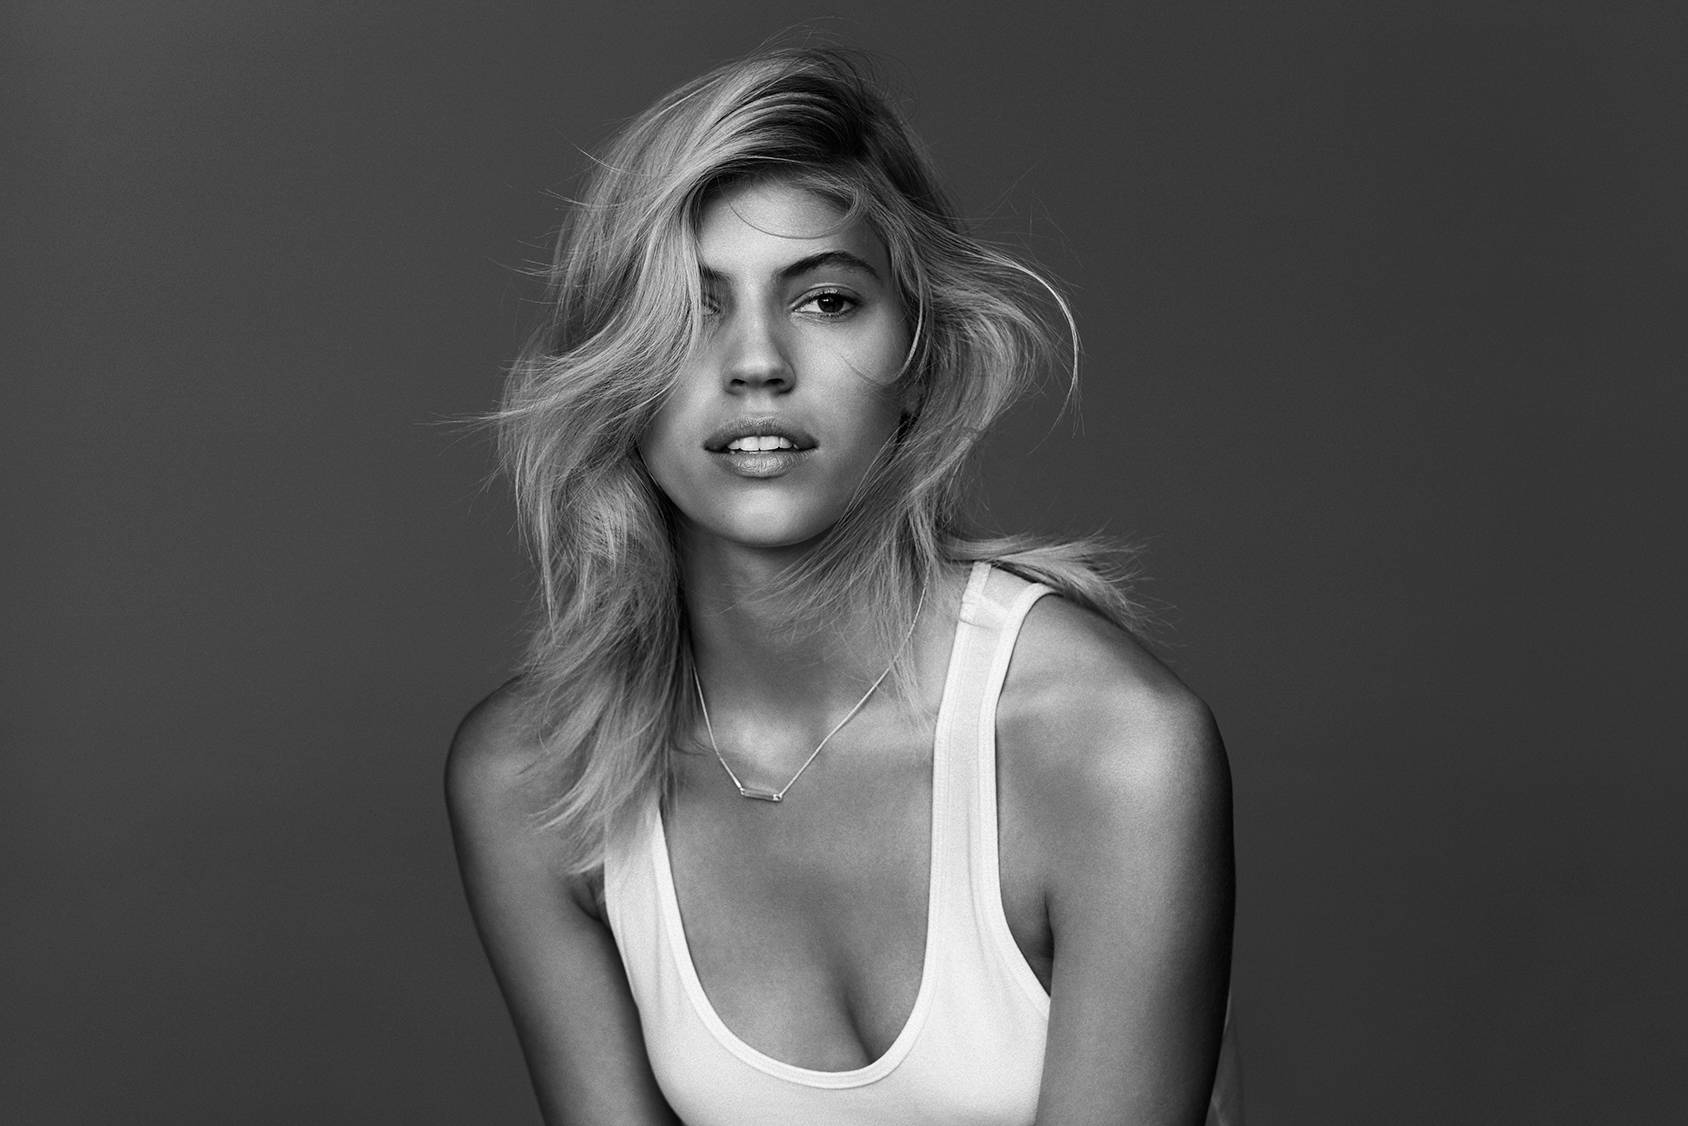 TOP MODEL SECRETS: DEVON WINDSOR